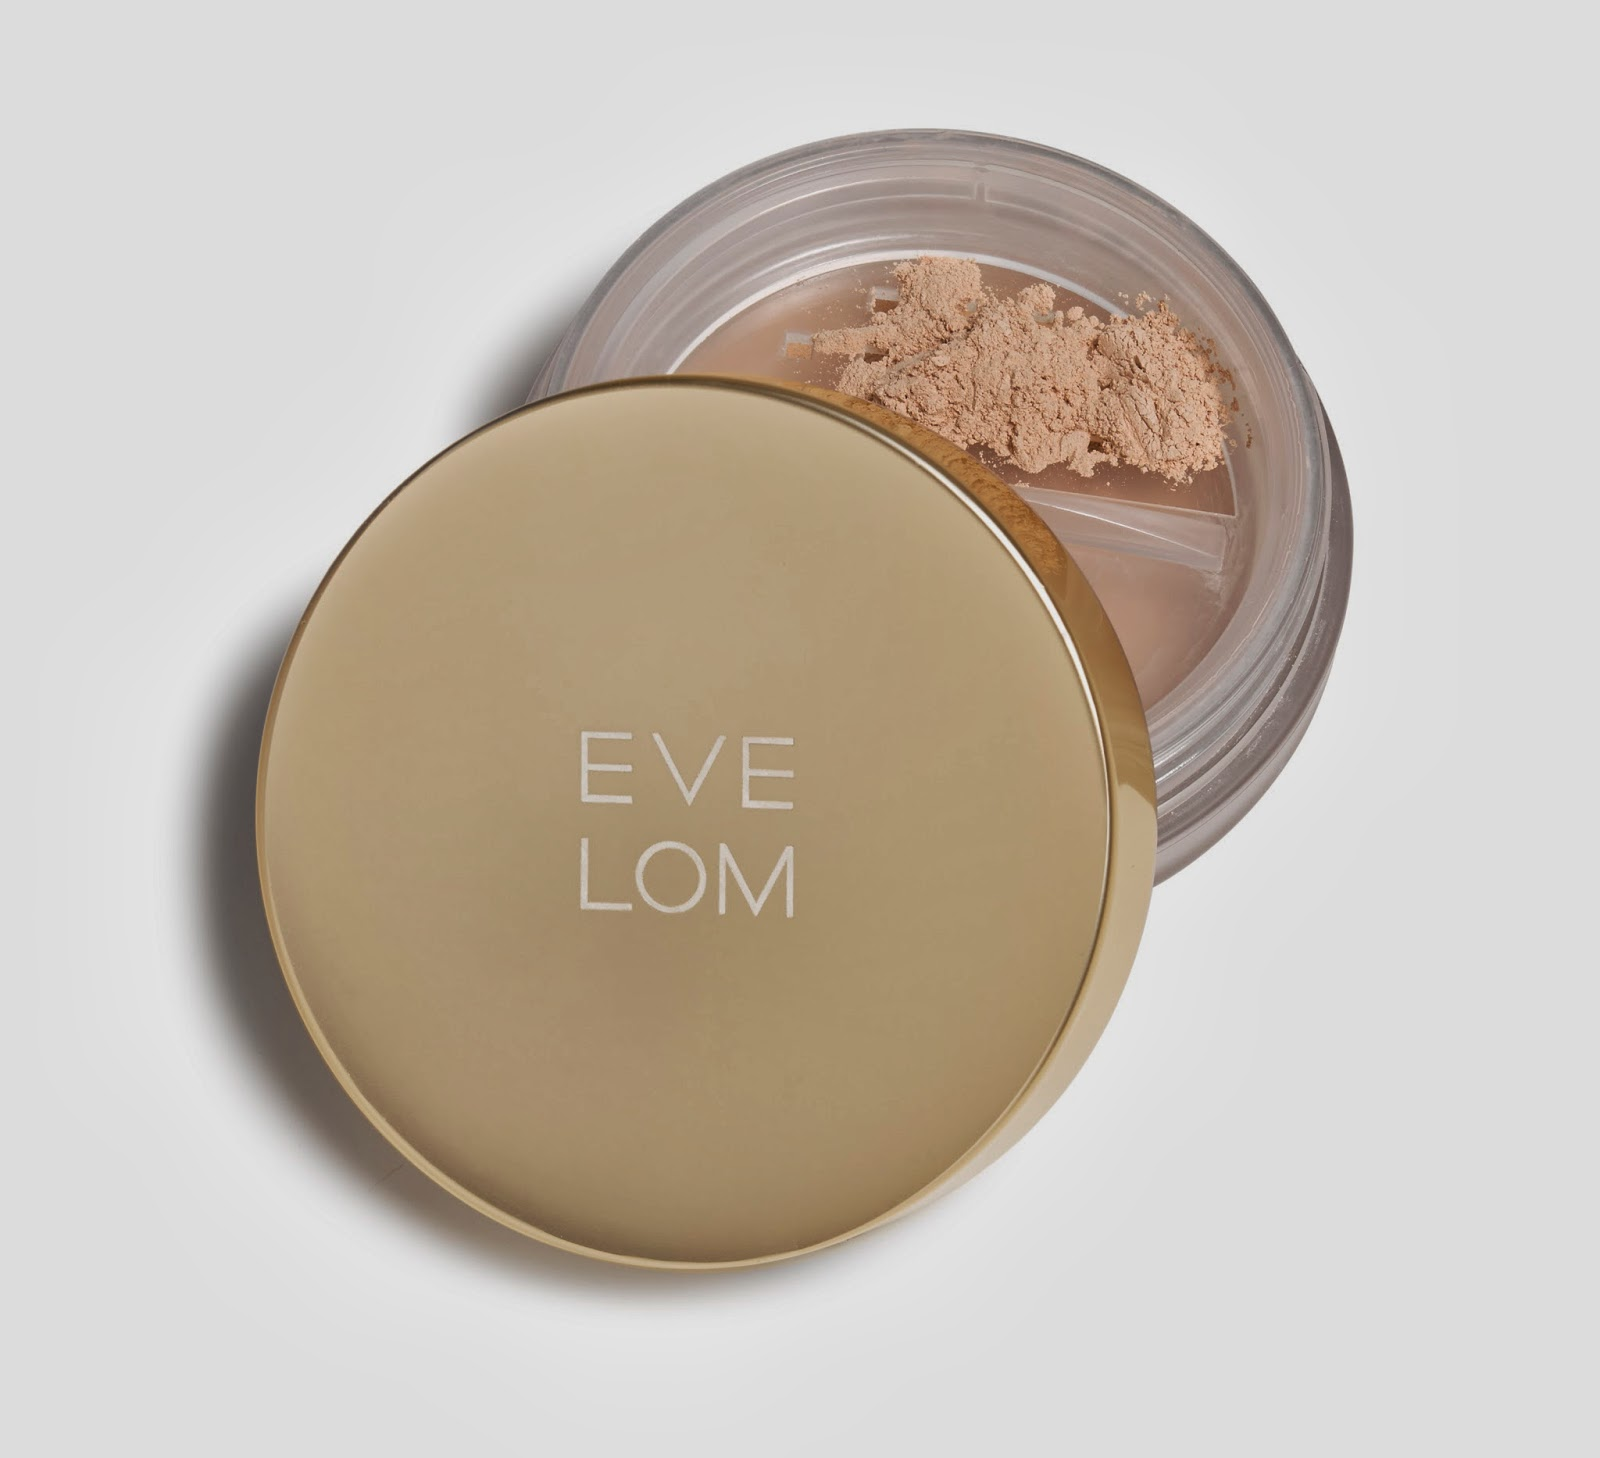 EVE LOM_Mineral Powder Foundation_lid open